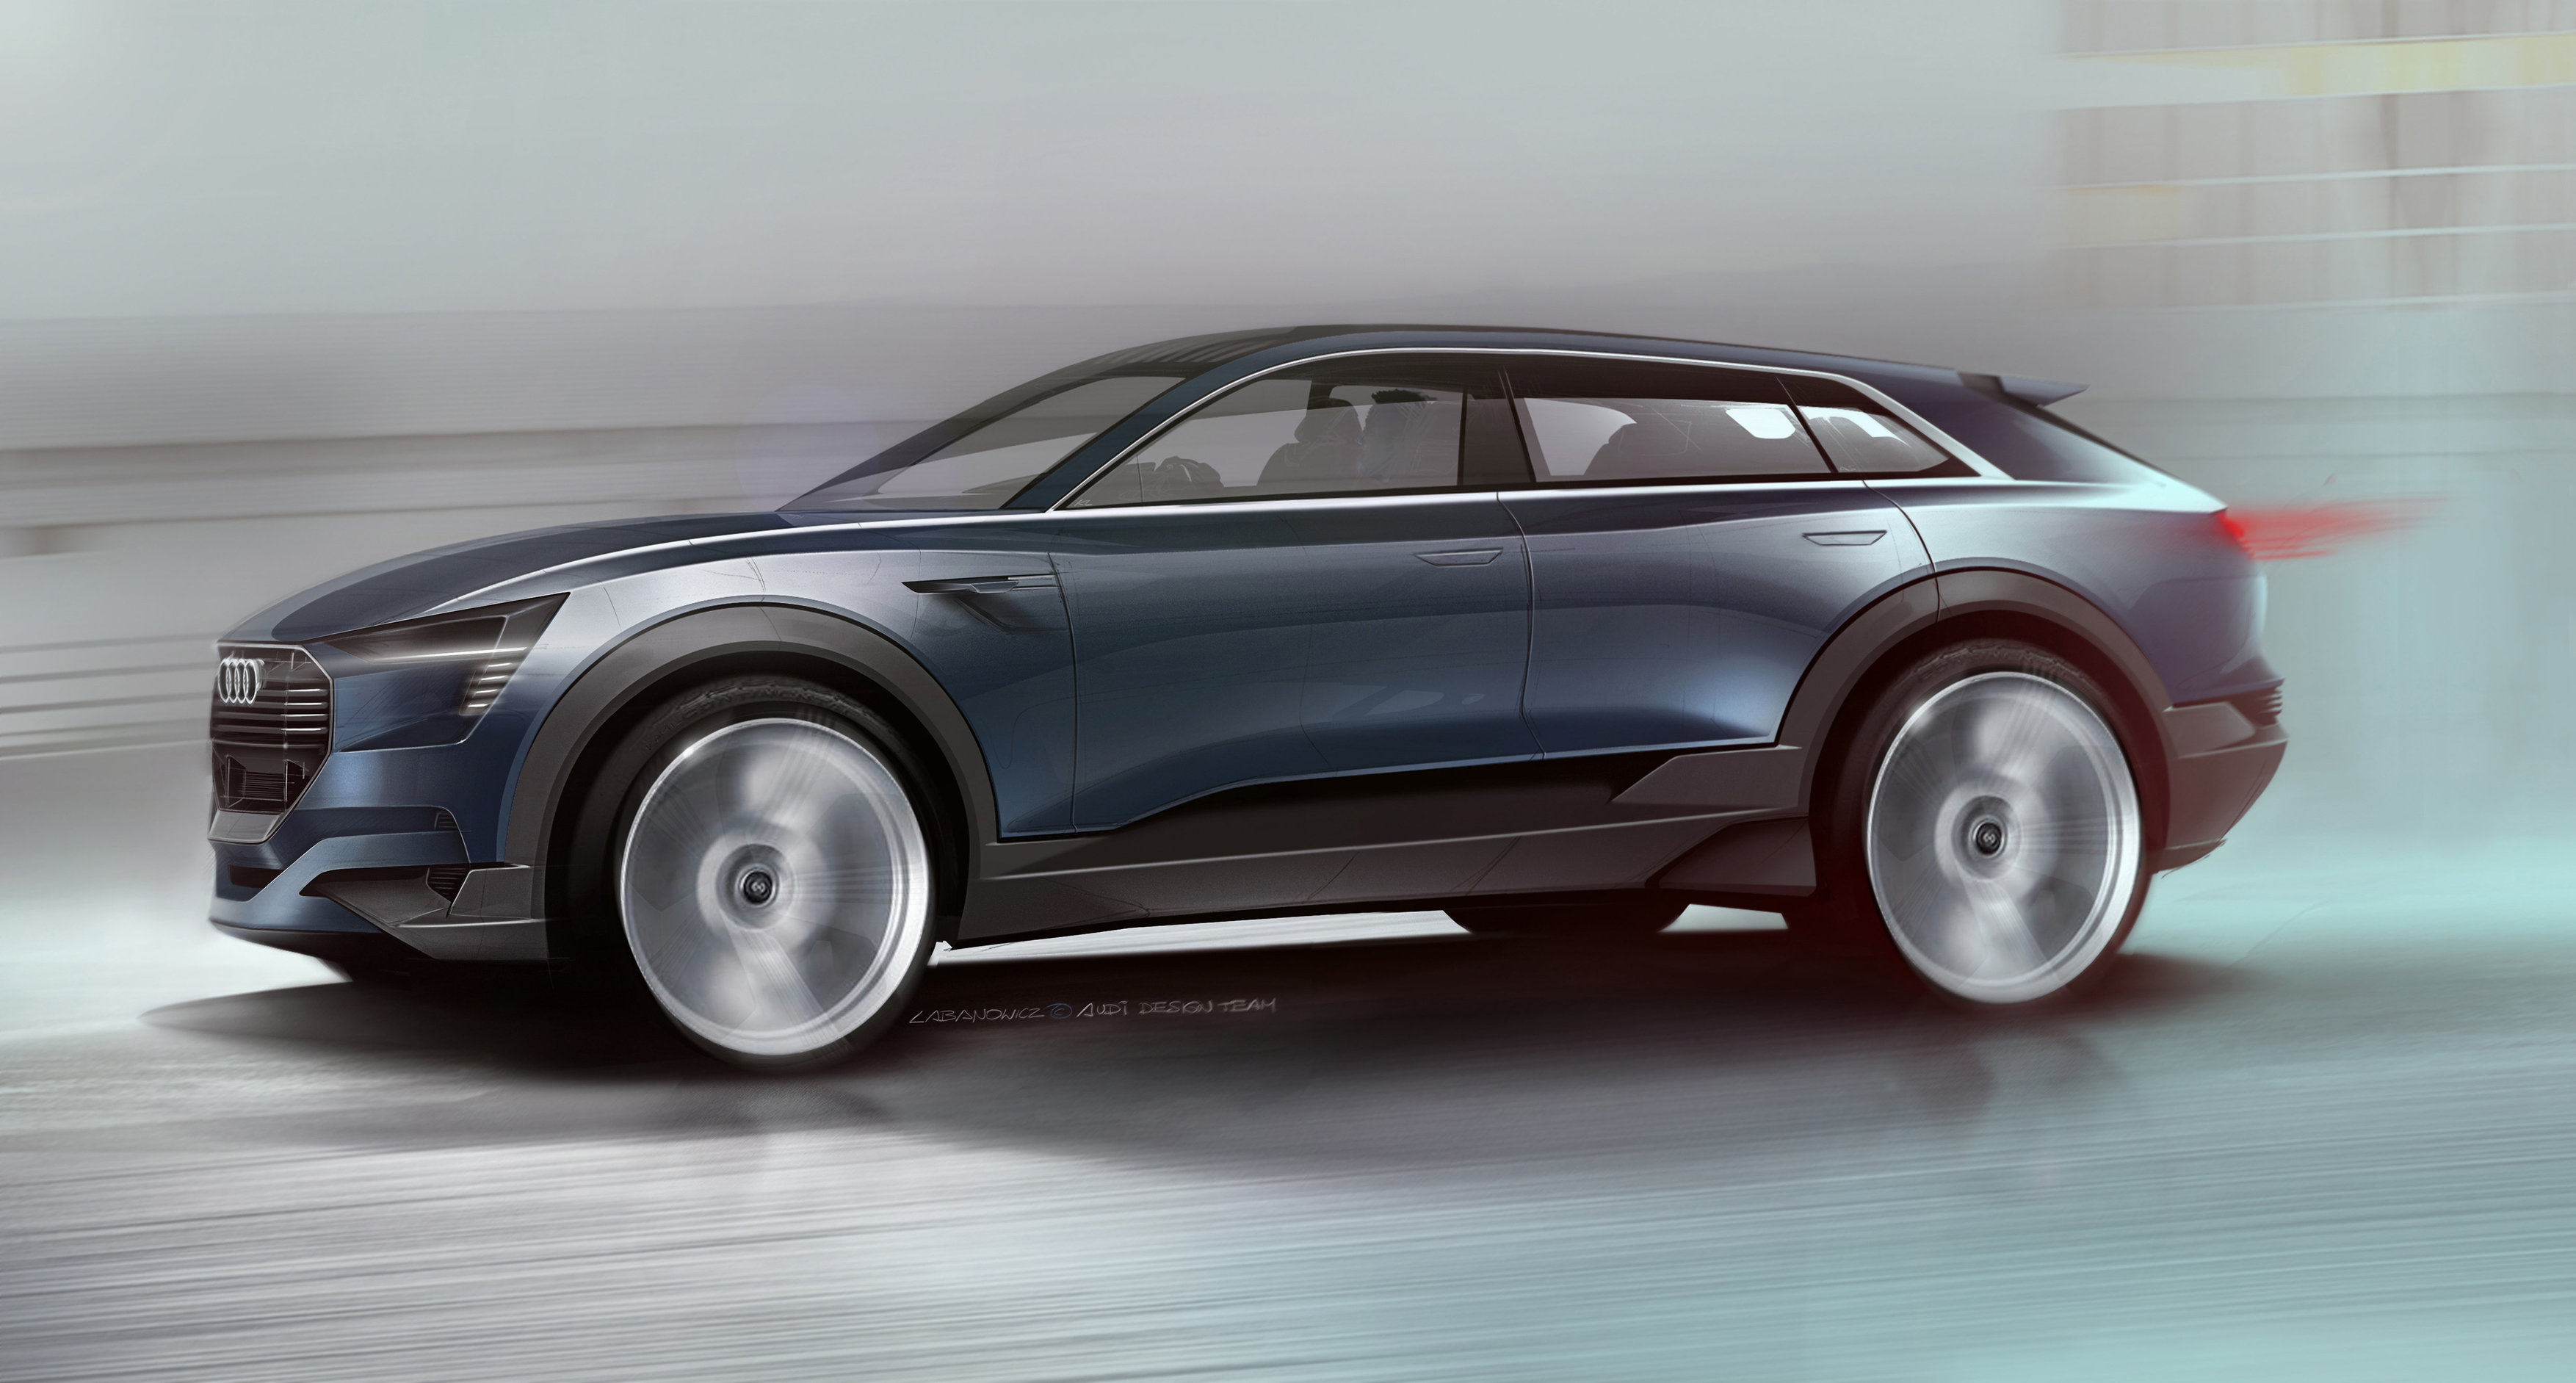 The Audi e-tron quattro concept is an electric car set to debut next month at the International Motor Show 2015 in Frankfurt.